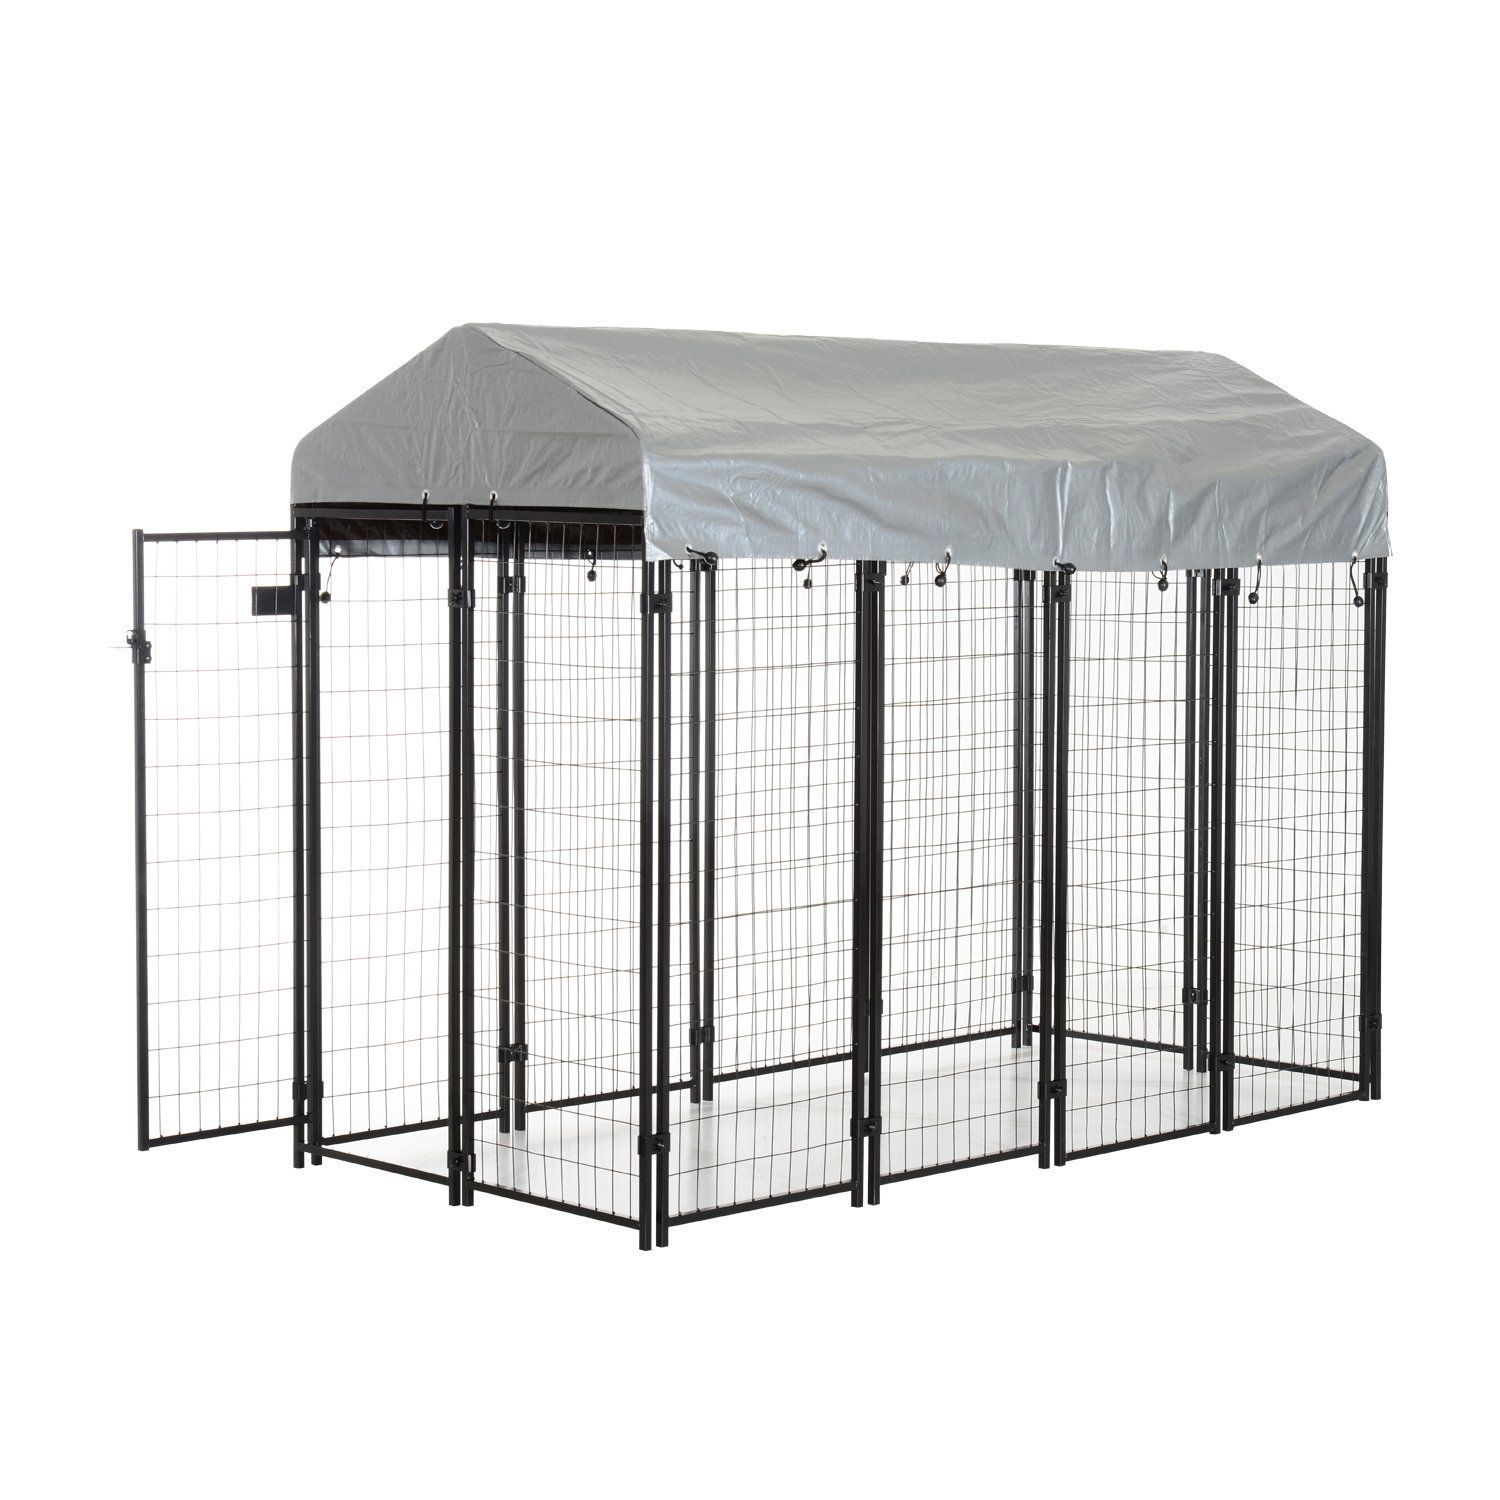 Pawhut 97 X 46 X 58 72 Outdoor Covered Dog Box Kennel Insider S Special Review You Can T Miss Read More Dog Metal Dog Kennel Dog Kennel Outdoor Dog